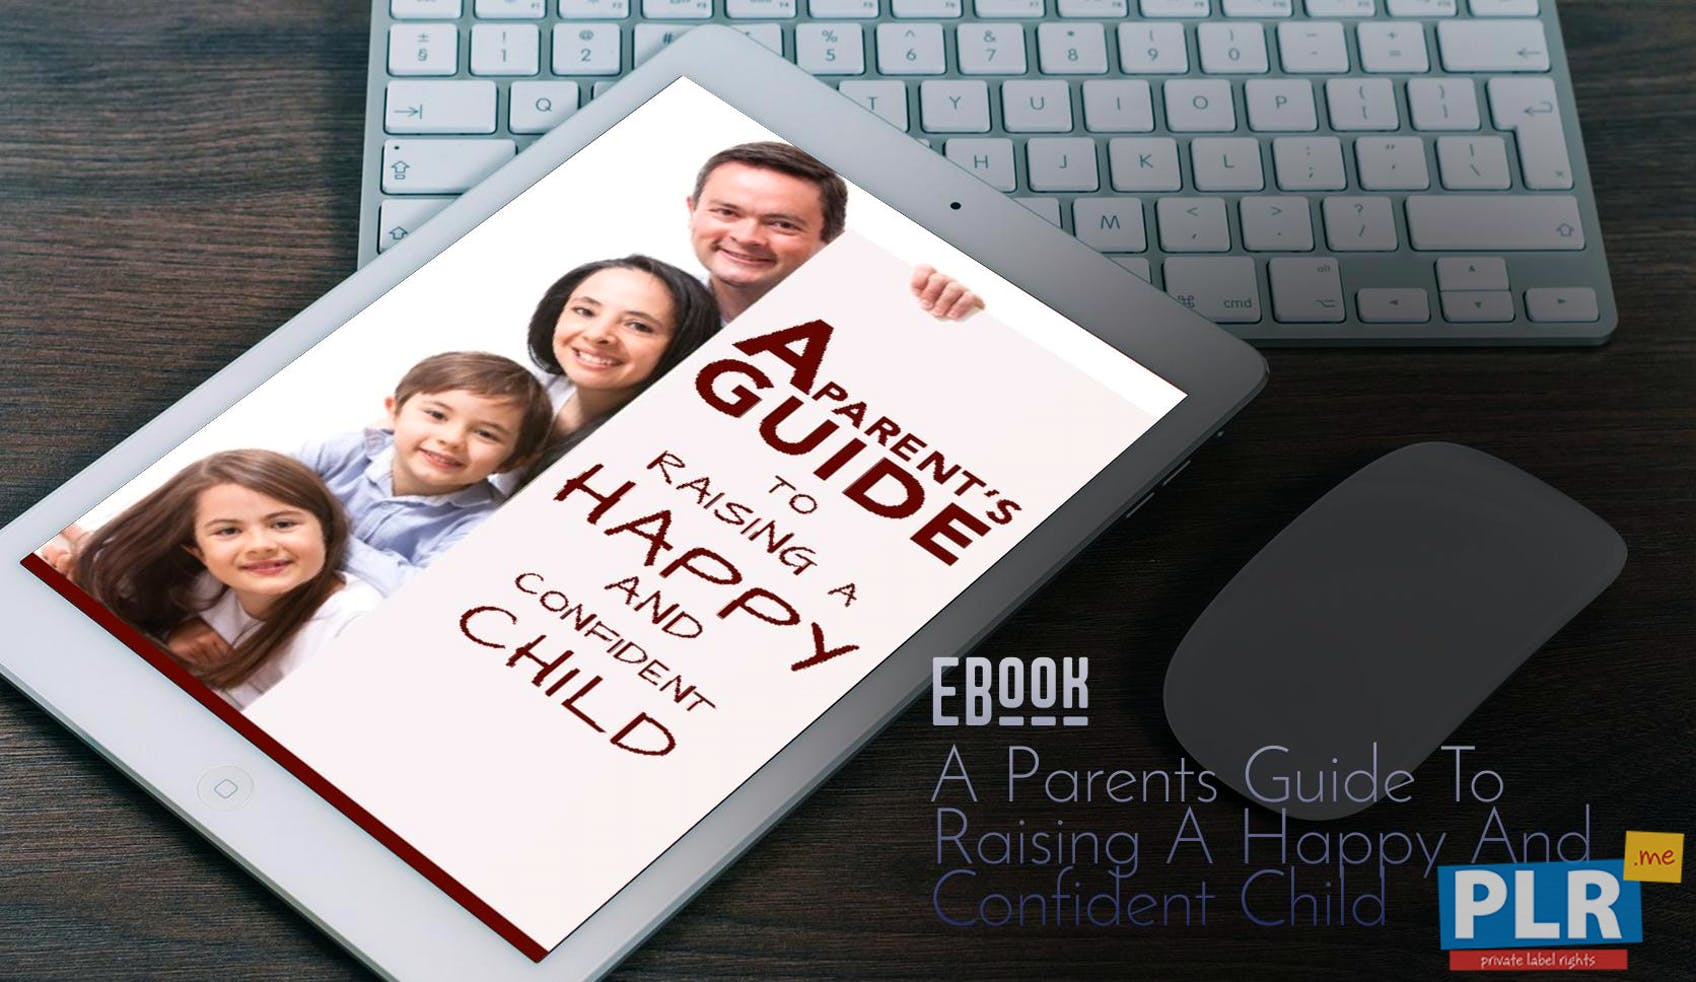 A Parents Guide To Raising A Happy And Confident Child